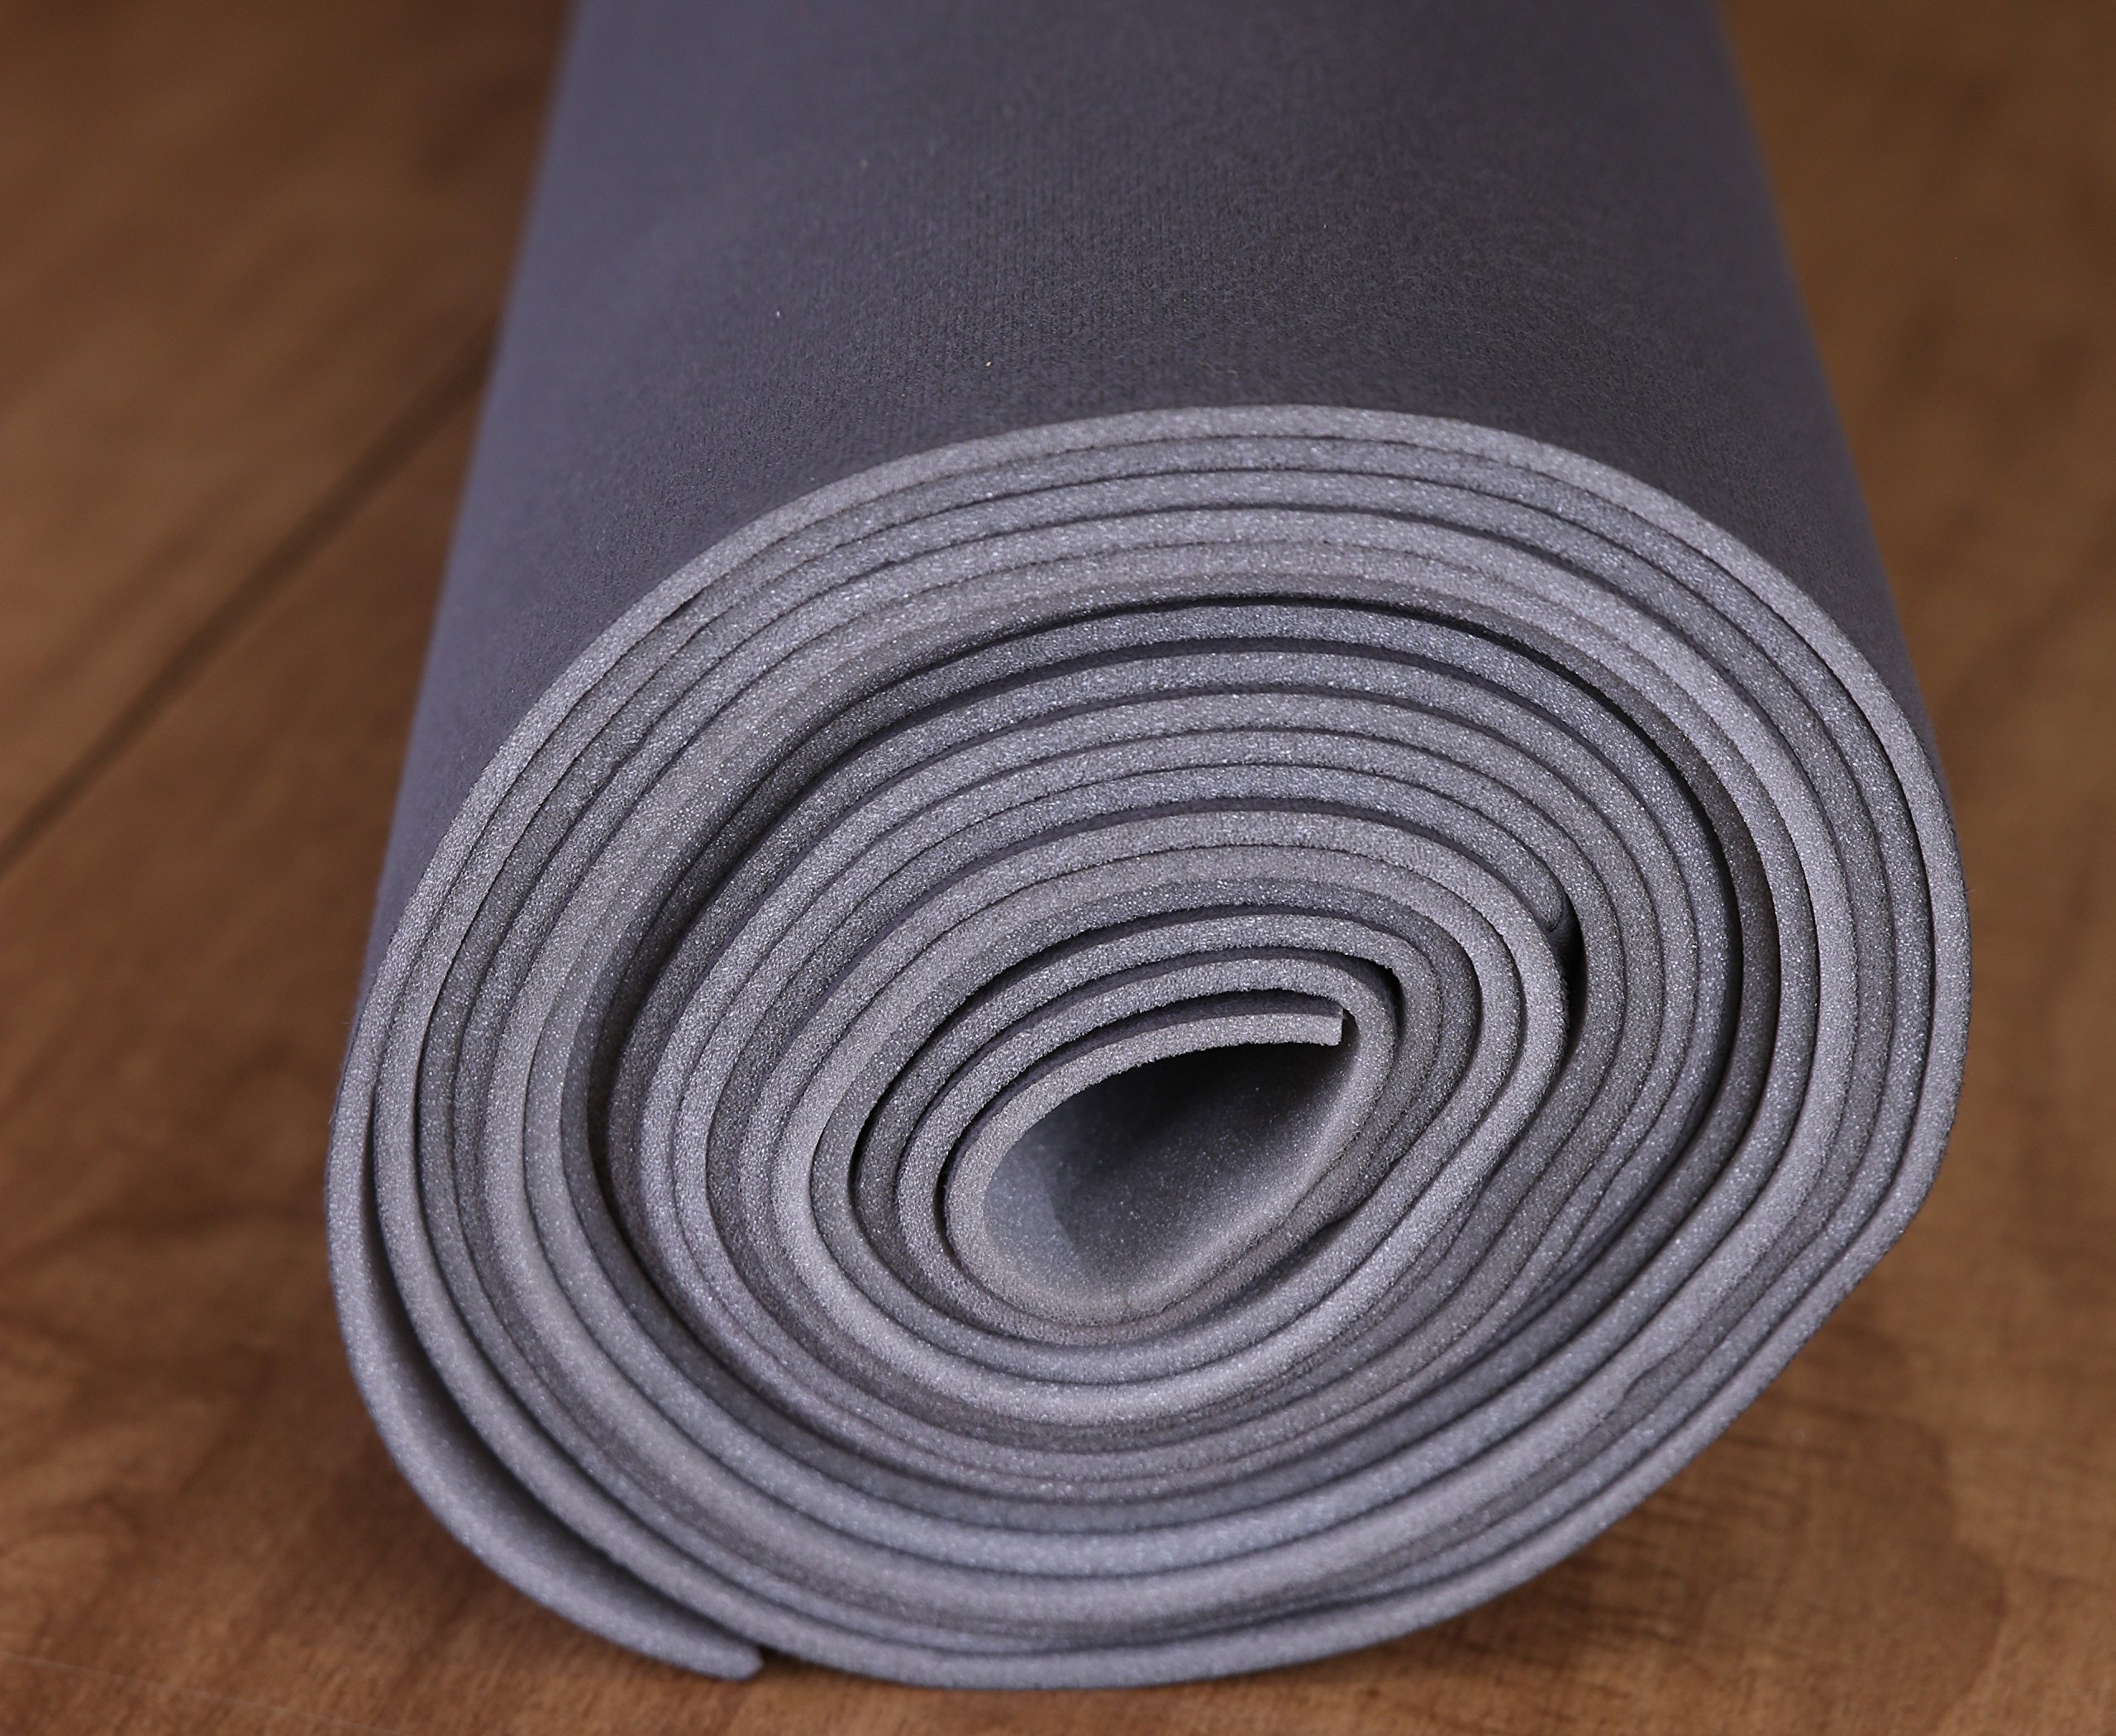 Dark Gray/Charcoal Auto Headliner 3/16'' Foam Backing Fabric Material (3 Yards - 108'' Long)